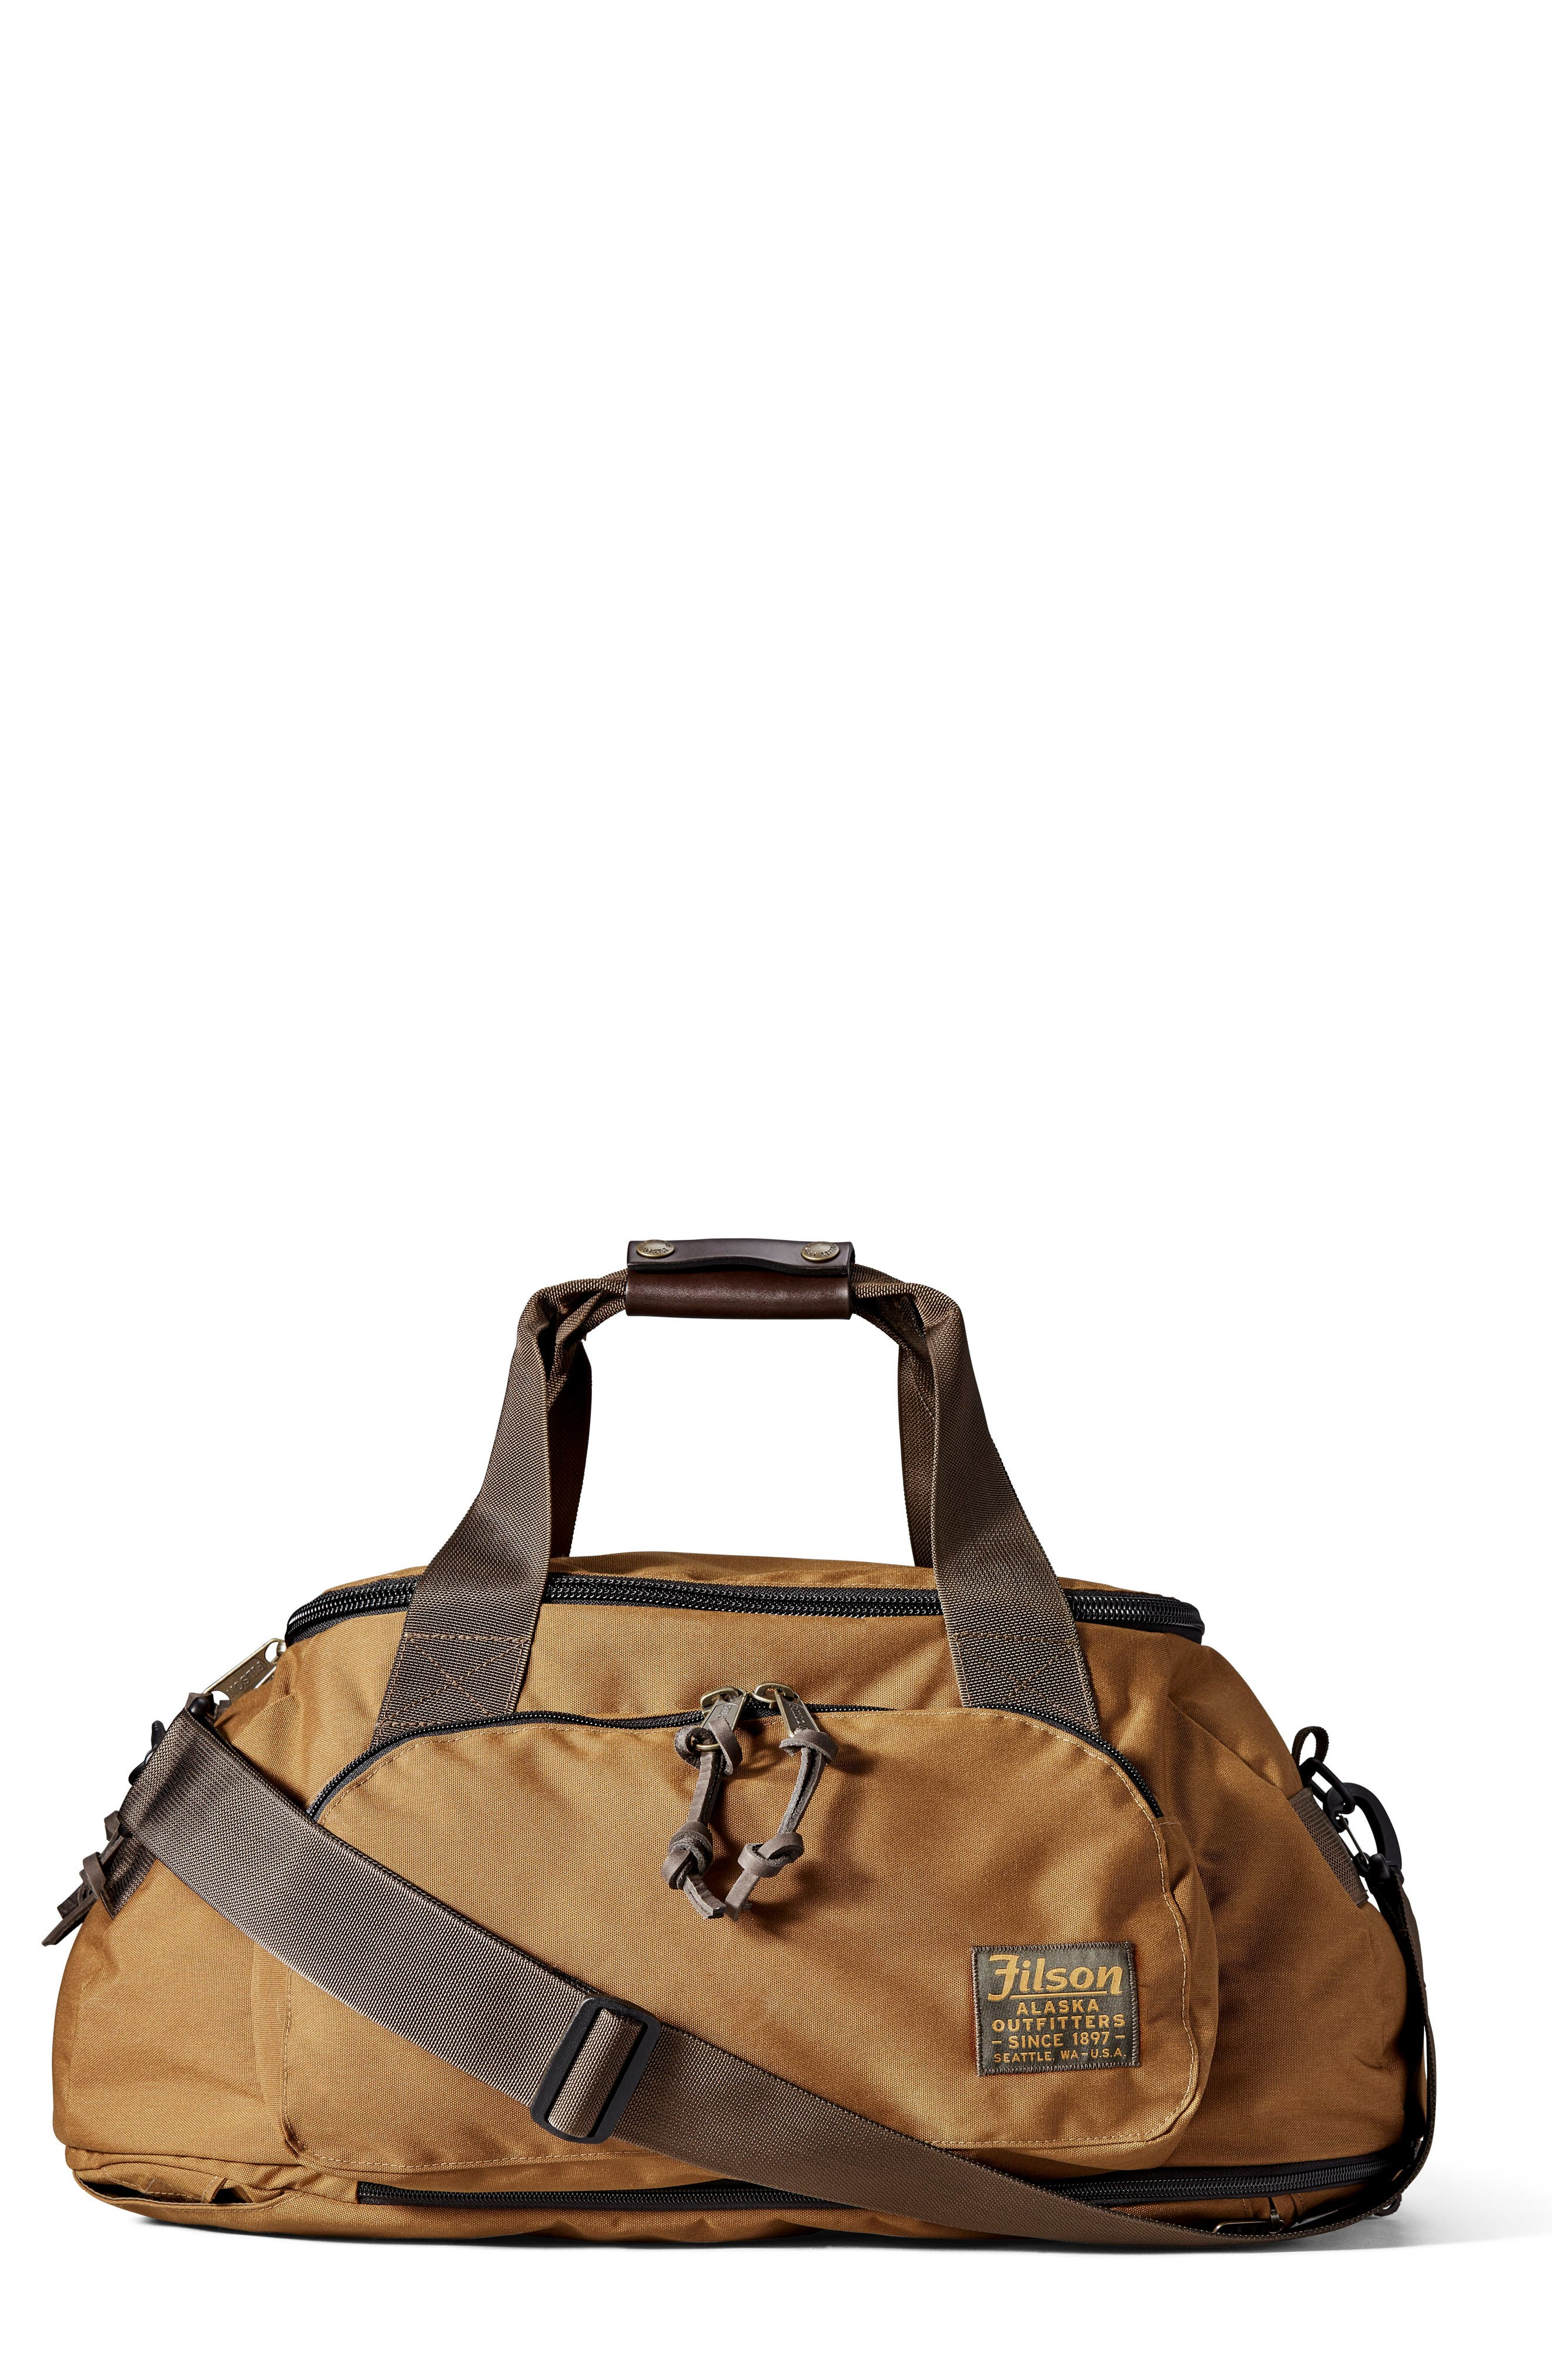 Filson Convertible Duffel Bag